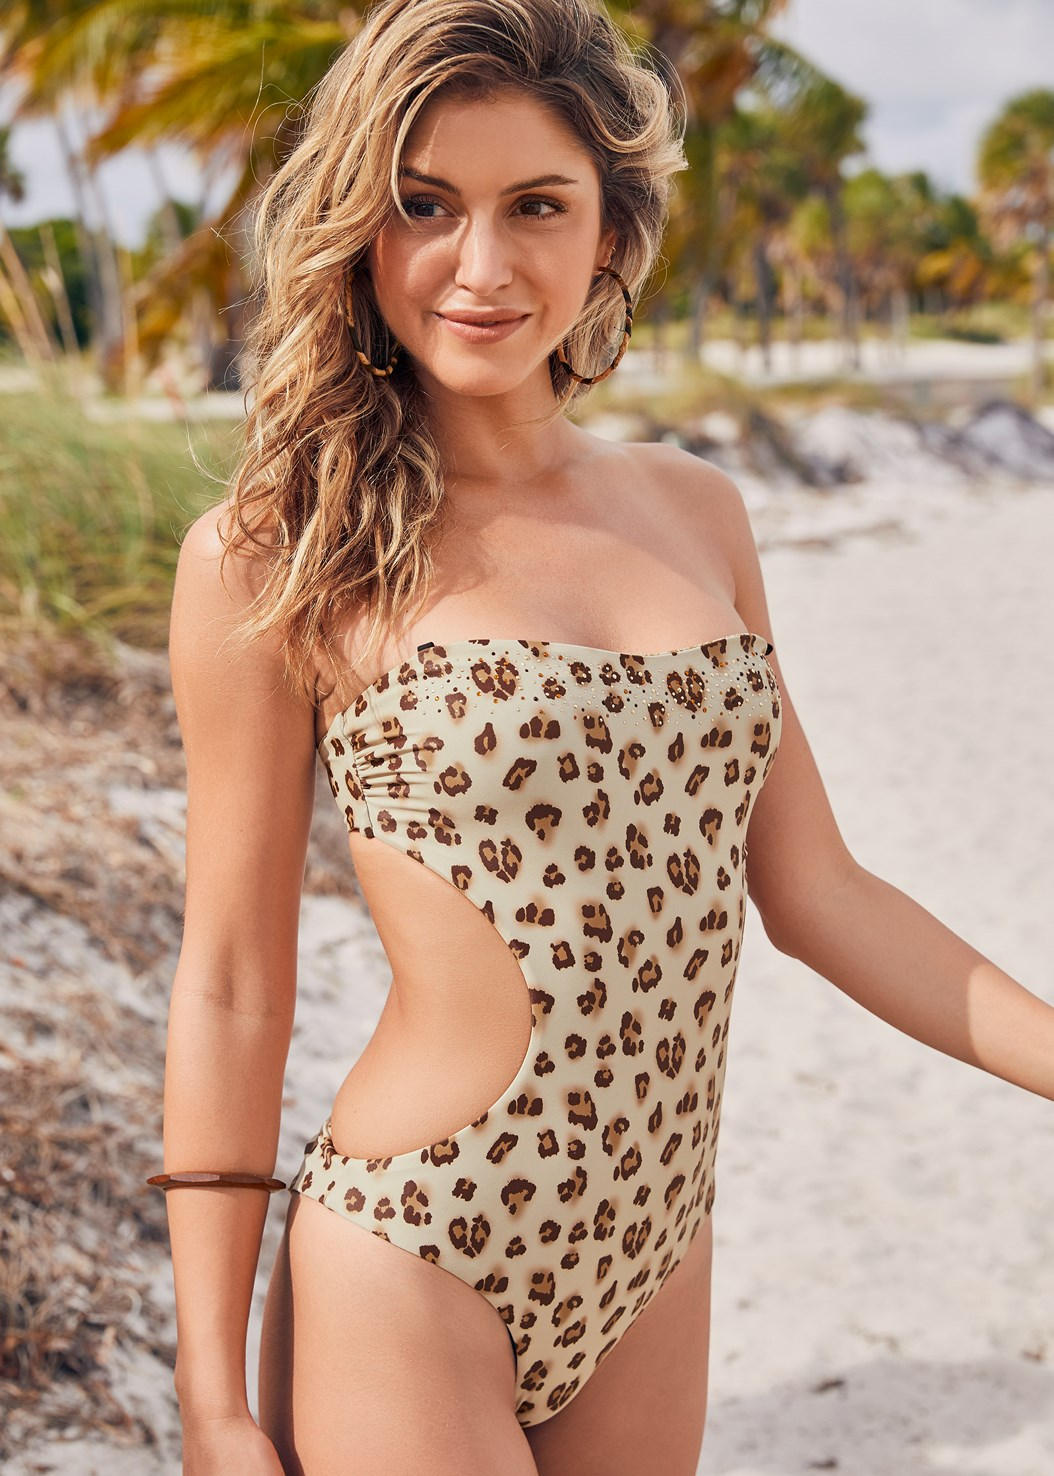 Reversible Monokini,Cali Ring Cover-Up Dress